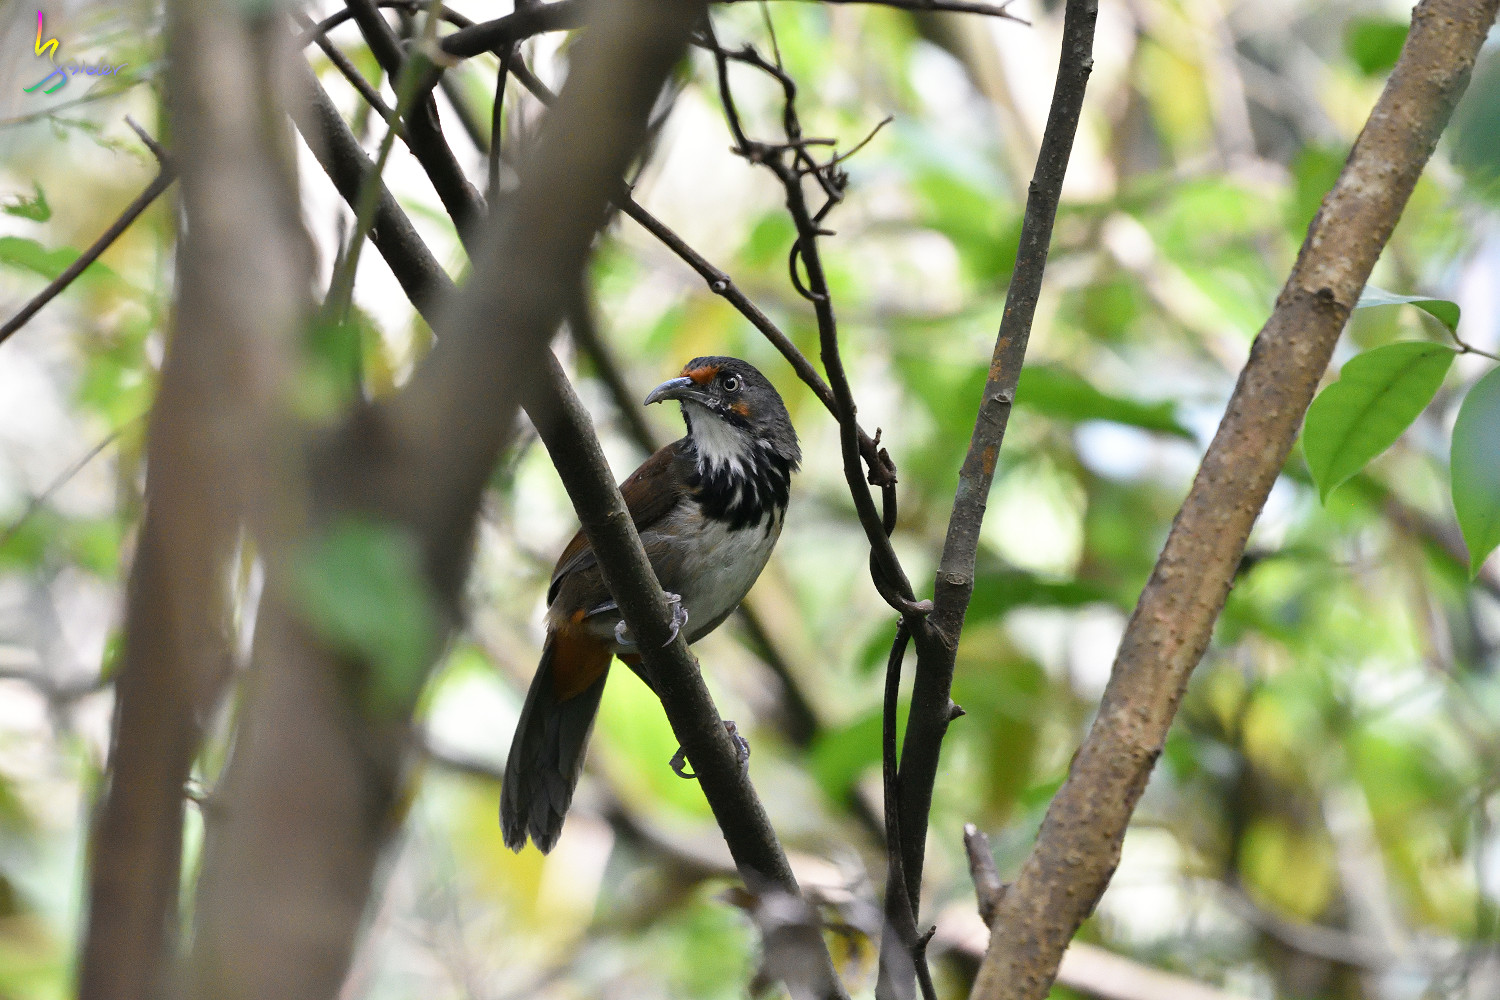 Rusty-cheeked_Scimitar_Babbler_1477